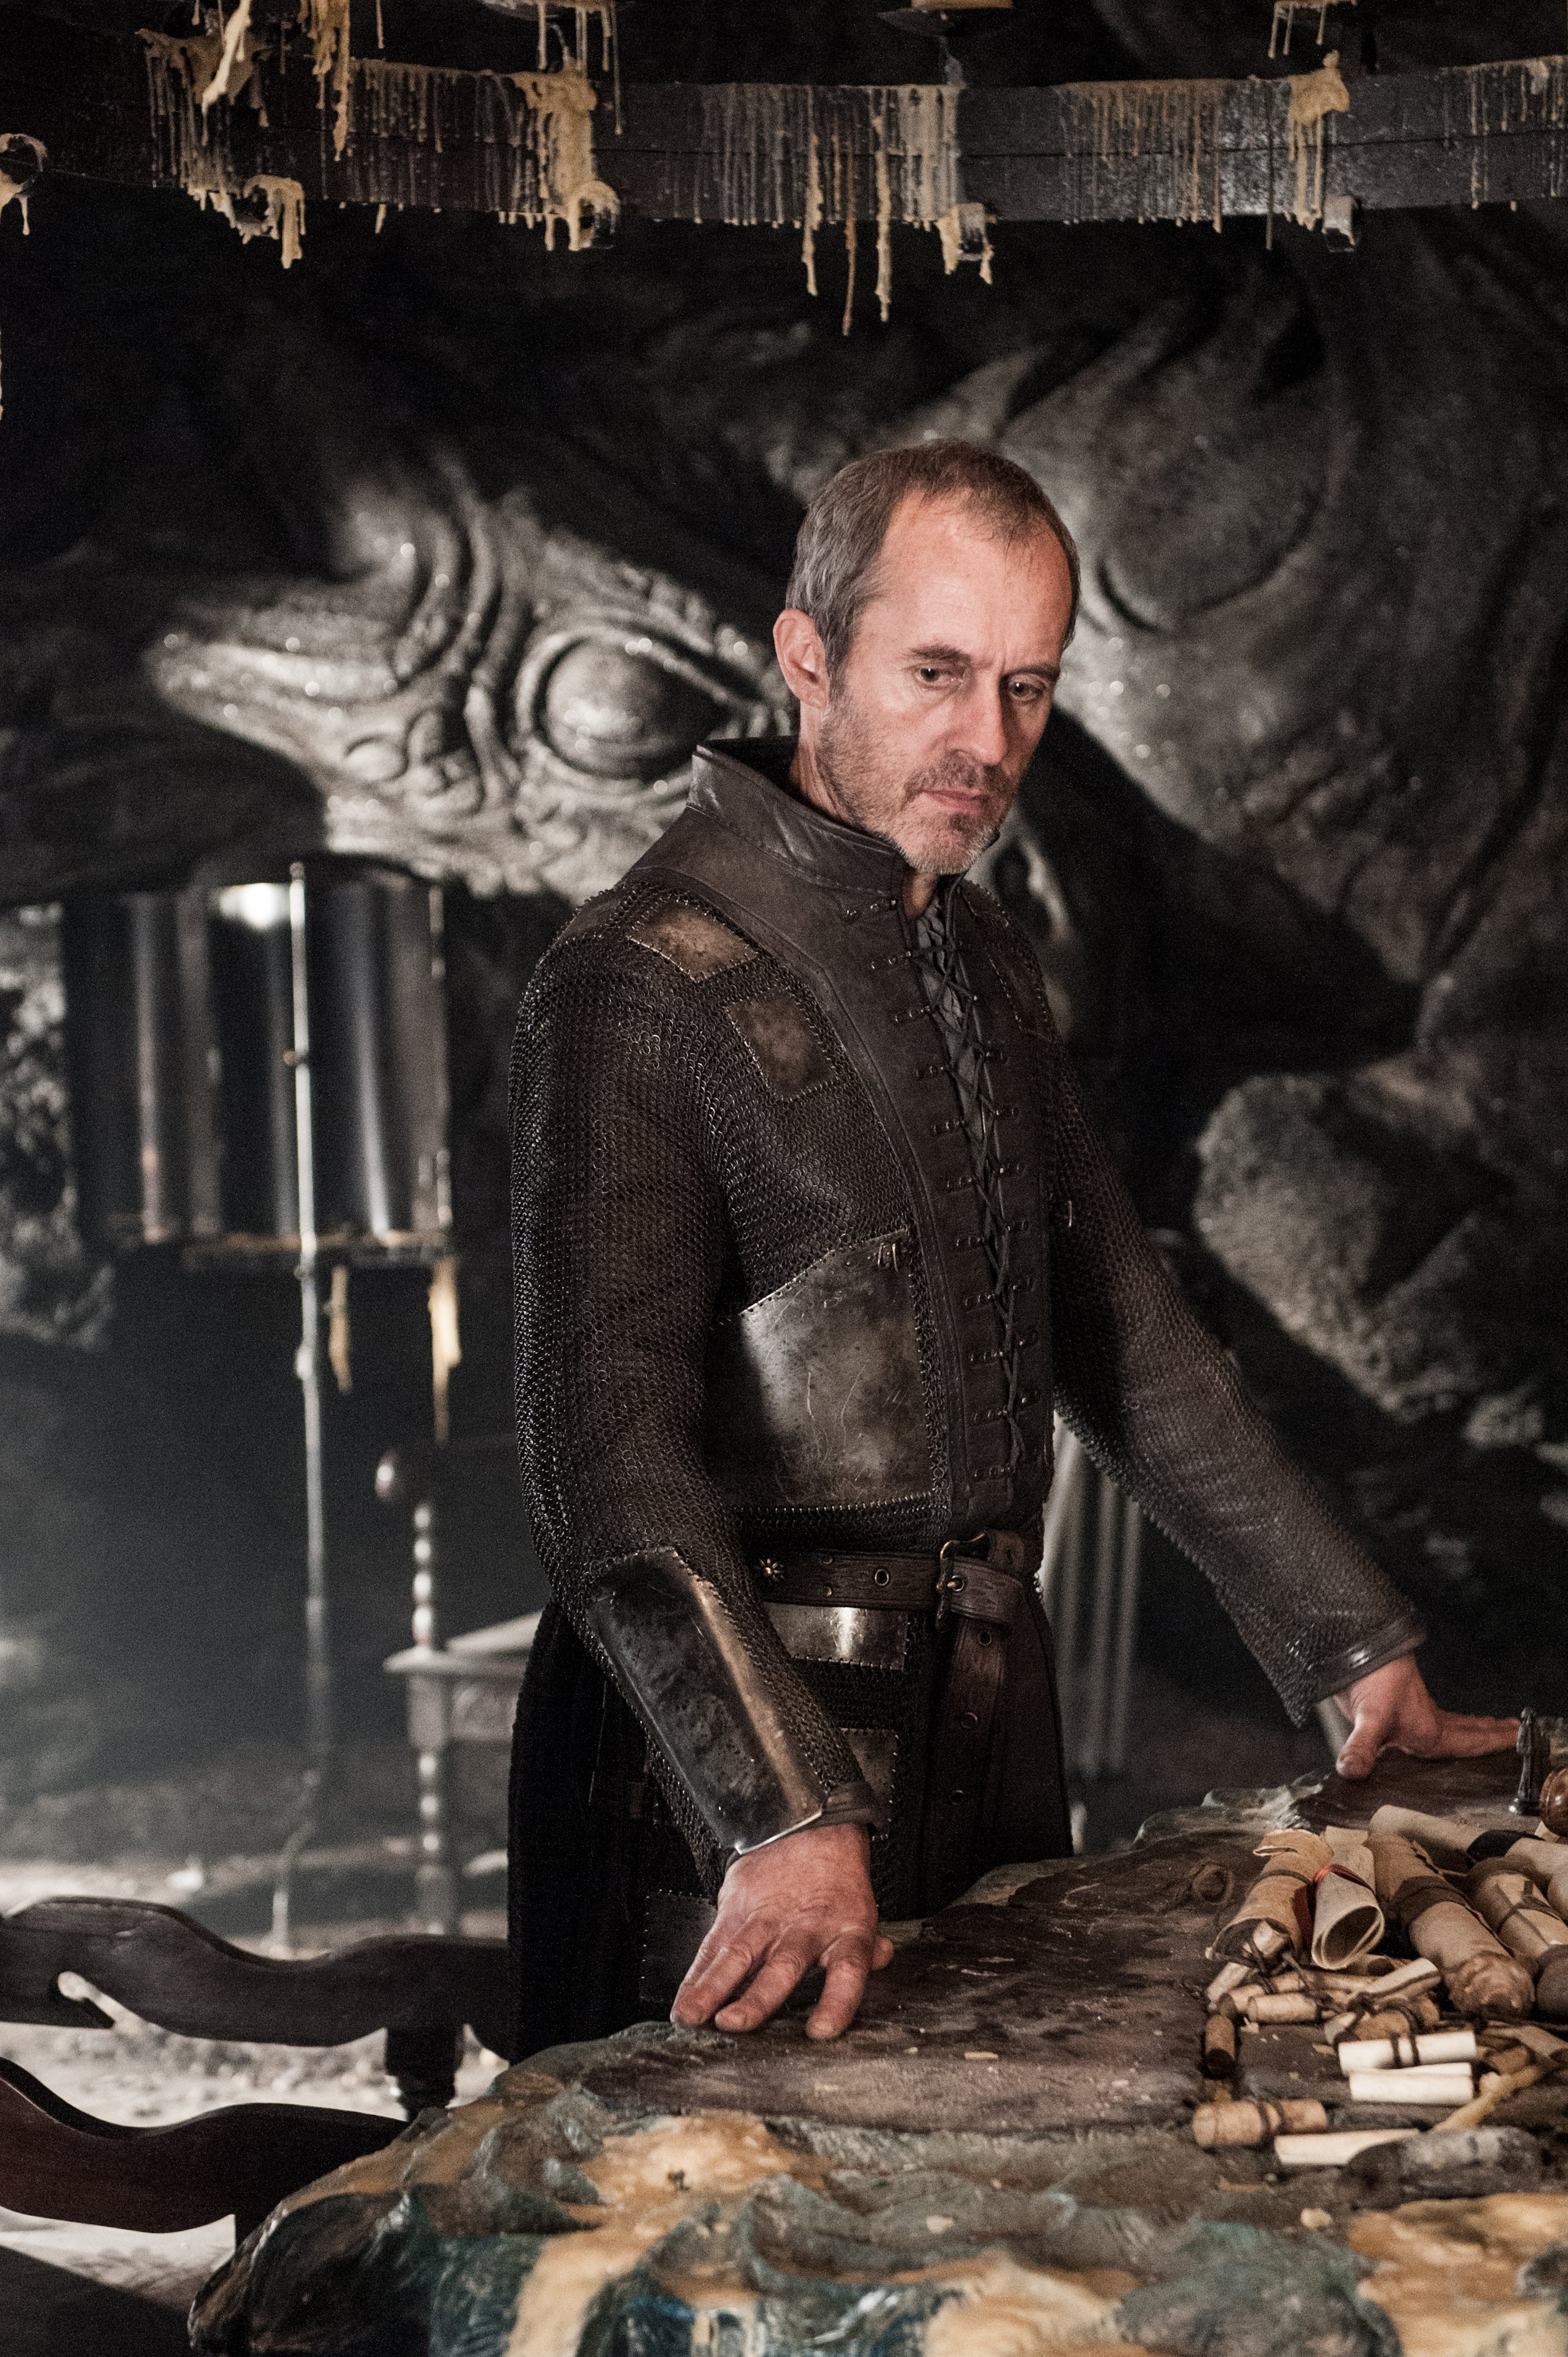 stannis baratheon game of thrones photo 35180371 fanpop. Black Bedroom Furniture Sets. Home Design Ideas